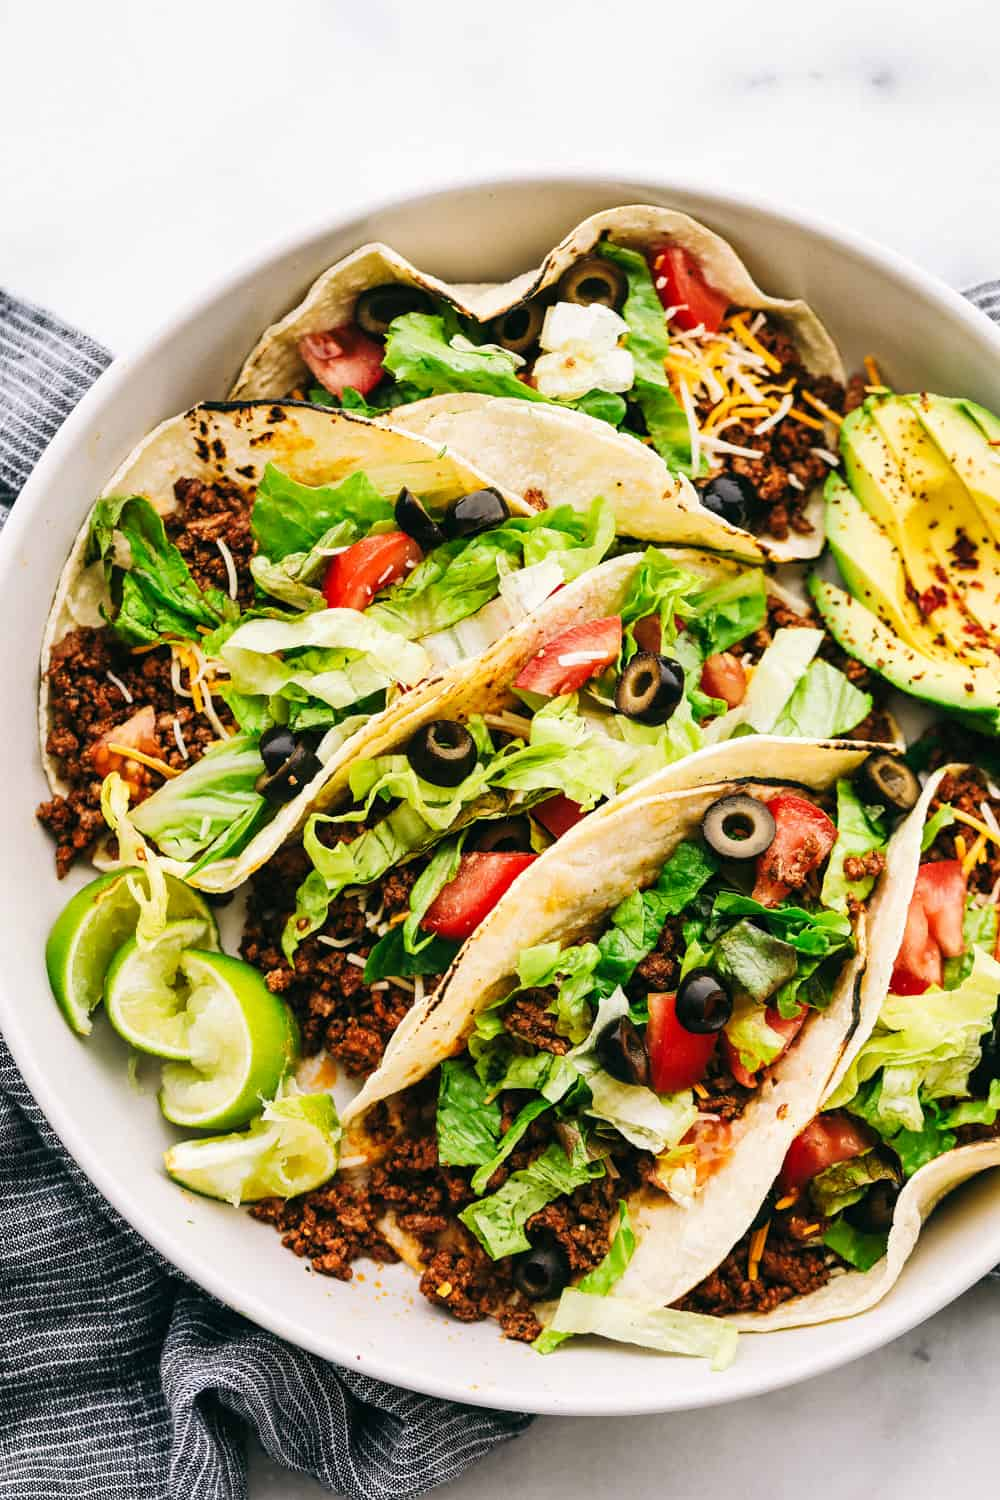 Five beef tacos on a plate loaded with shredded lettuce, sliced black olives, shredded cheese, tomato slices with lime slices and an avocado sliced on the side.